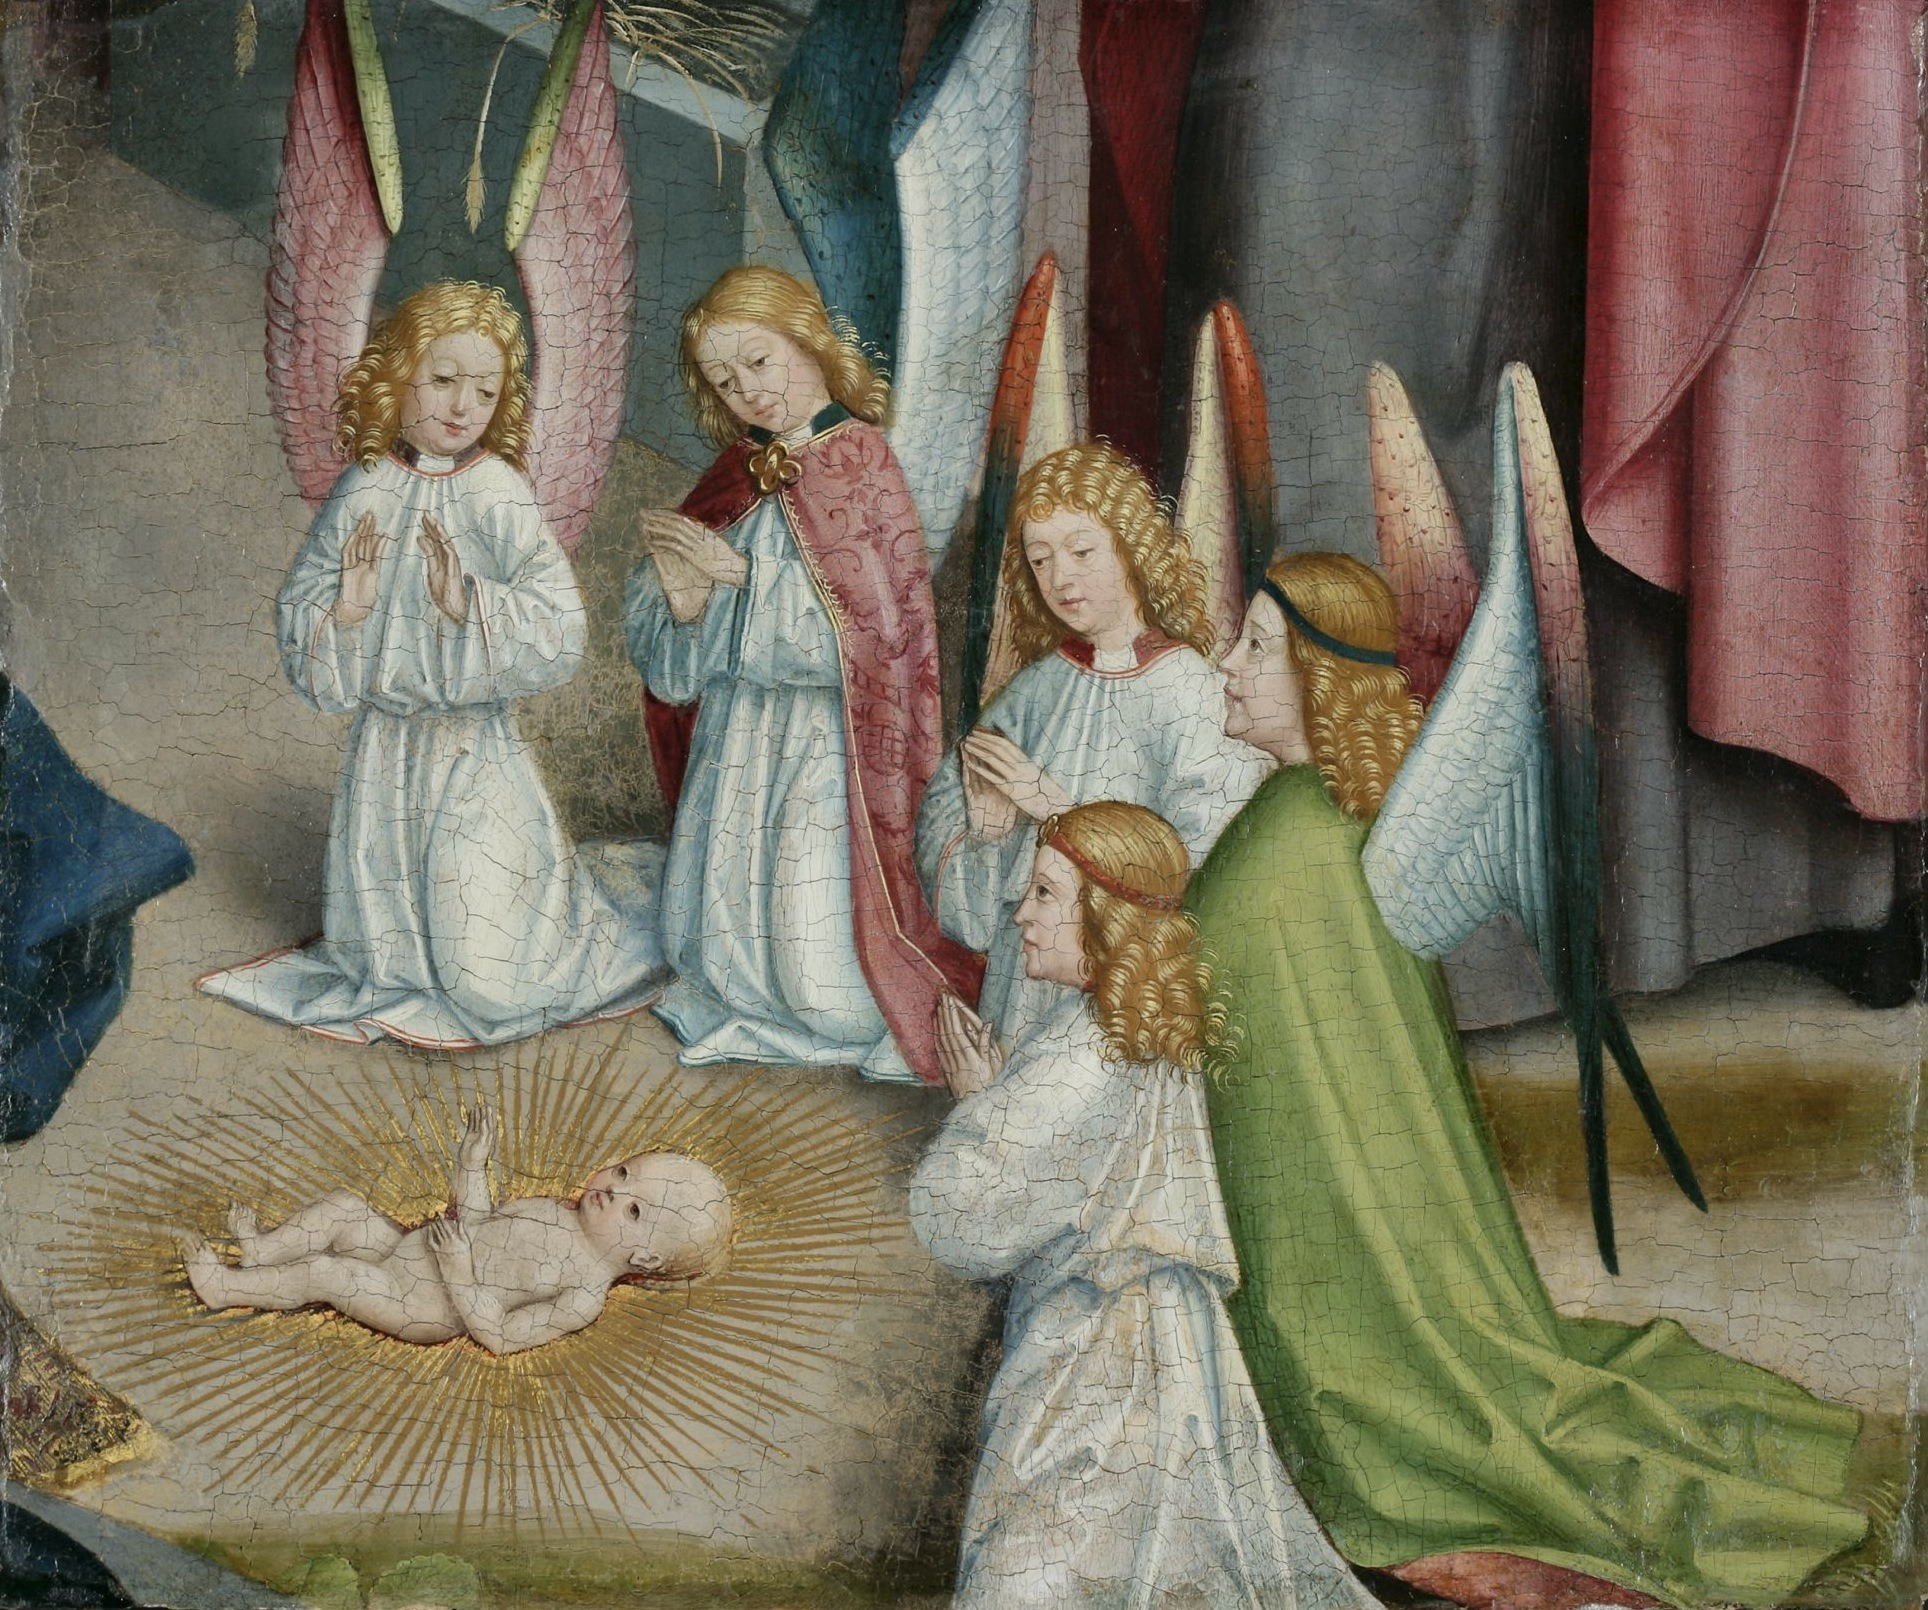 'Angels Worshipping the Christ Child' (1470-80) by Master of Liesborn